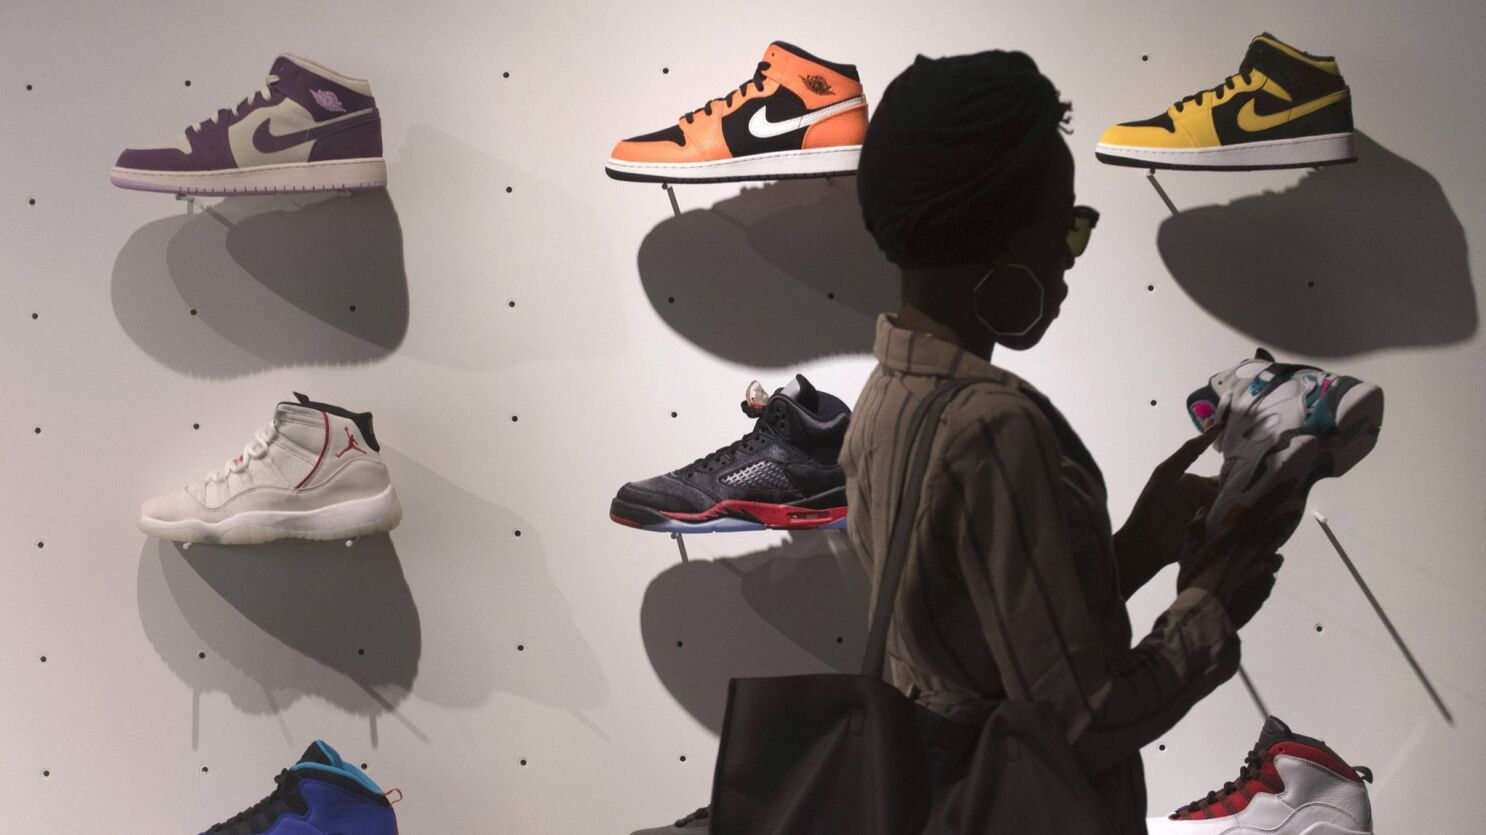 Those Nikes Buy Sell Or Hold Sneakers Are Now Assets Trading Like Stocks Los Angeles Times